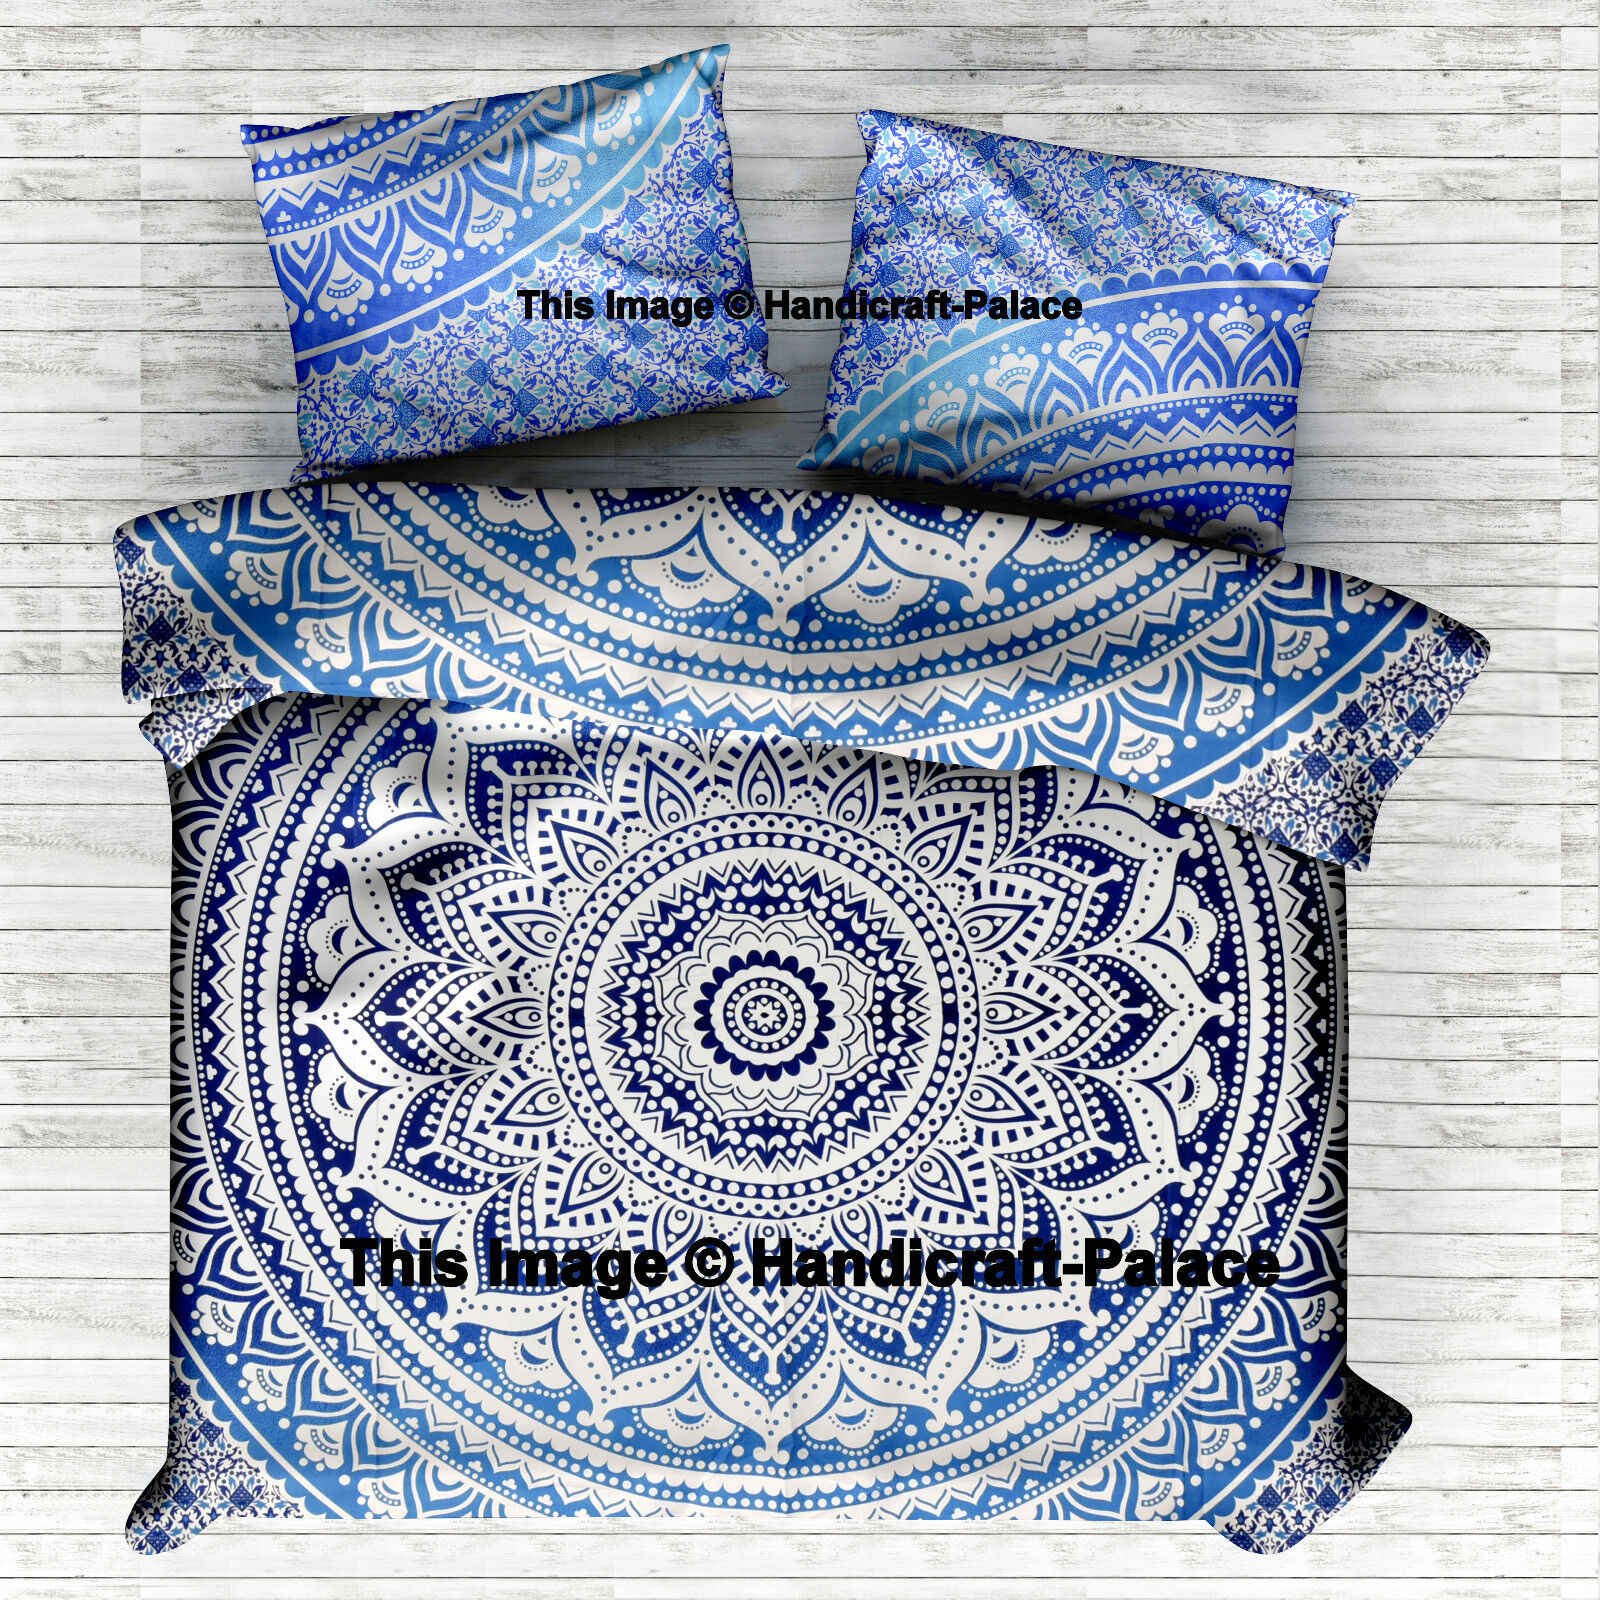 Selection - DUVET COVER SETS - Ethnic Indian Ombre Mandala - King Queen Bed Sets